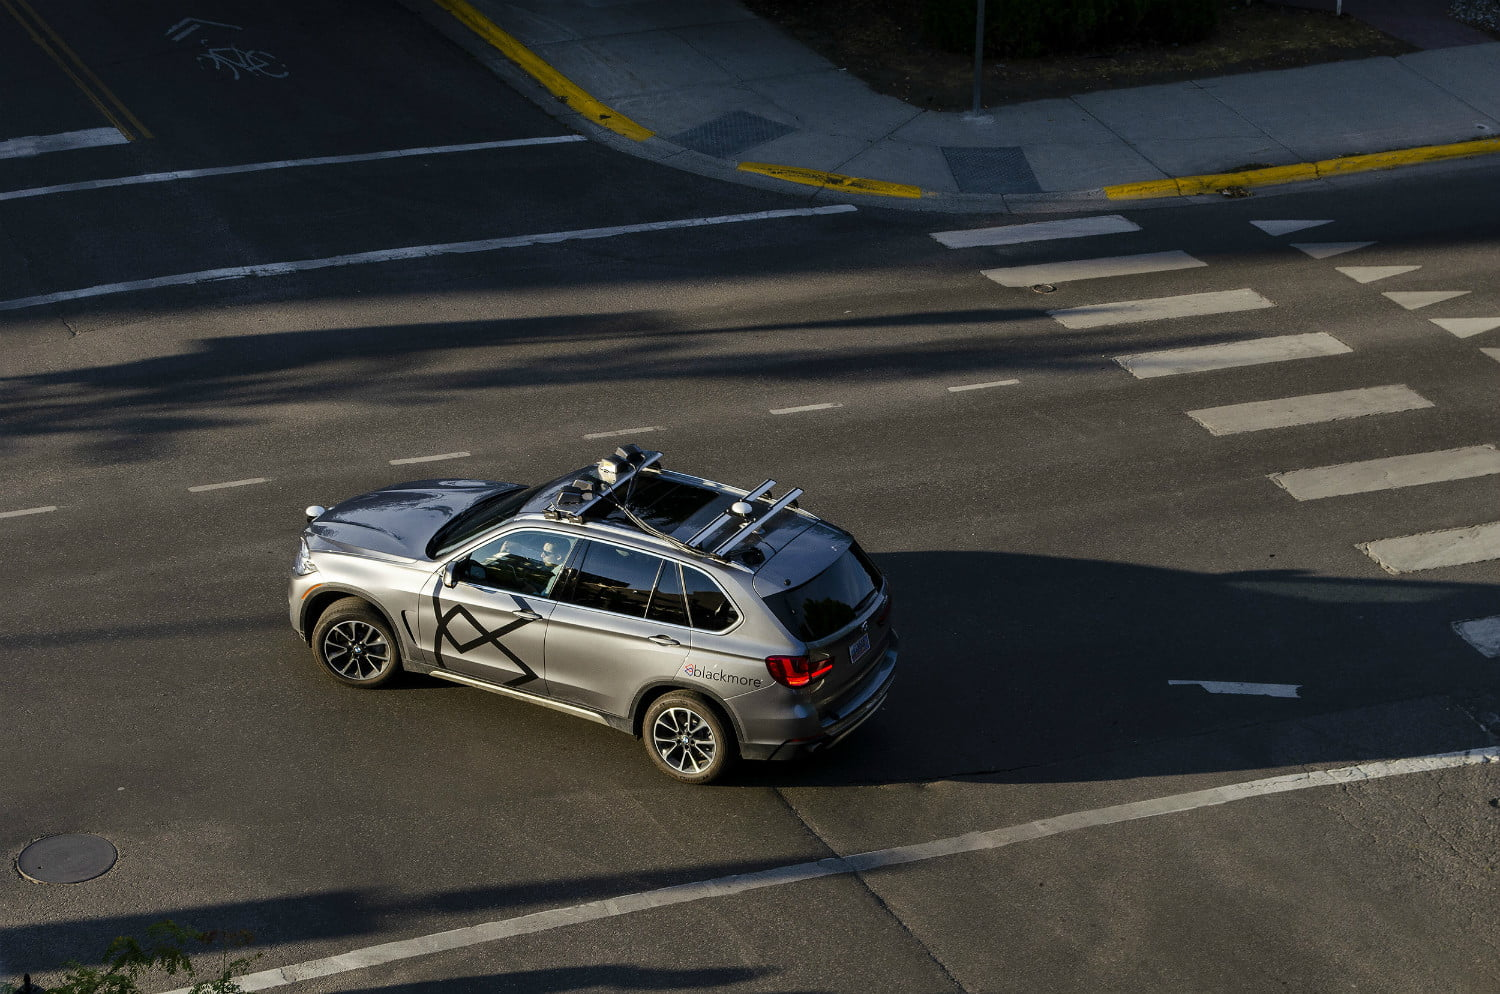 Continuous wave Doppler lidar instantly detects the speed of other vehicles